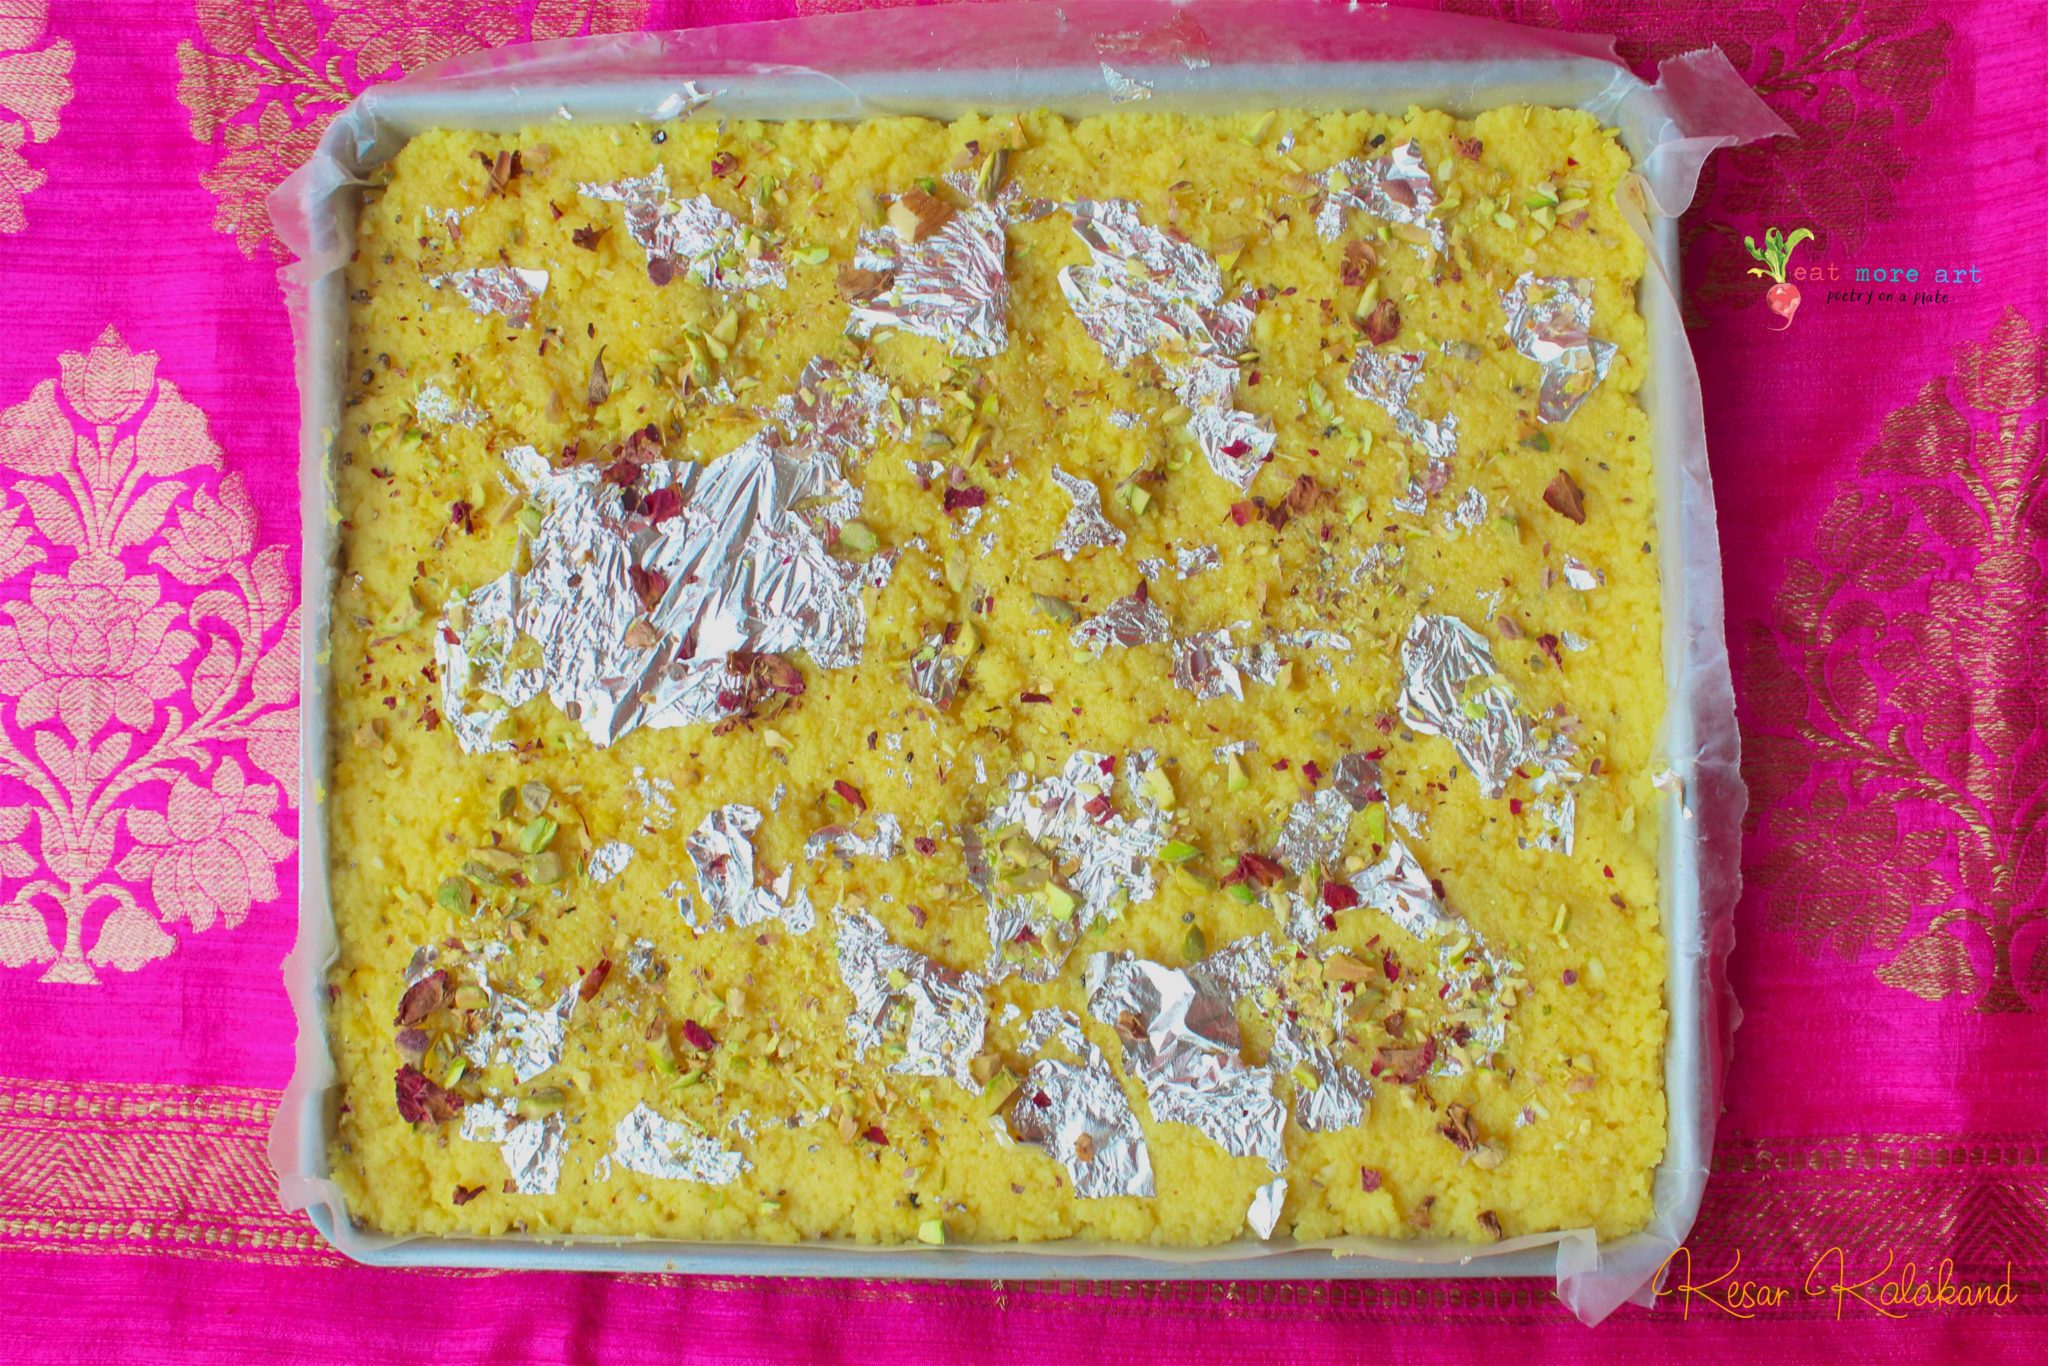 An overhead shot of saffron kalakand on a plate, garnished with dried rose petals and edible silver foil